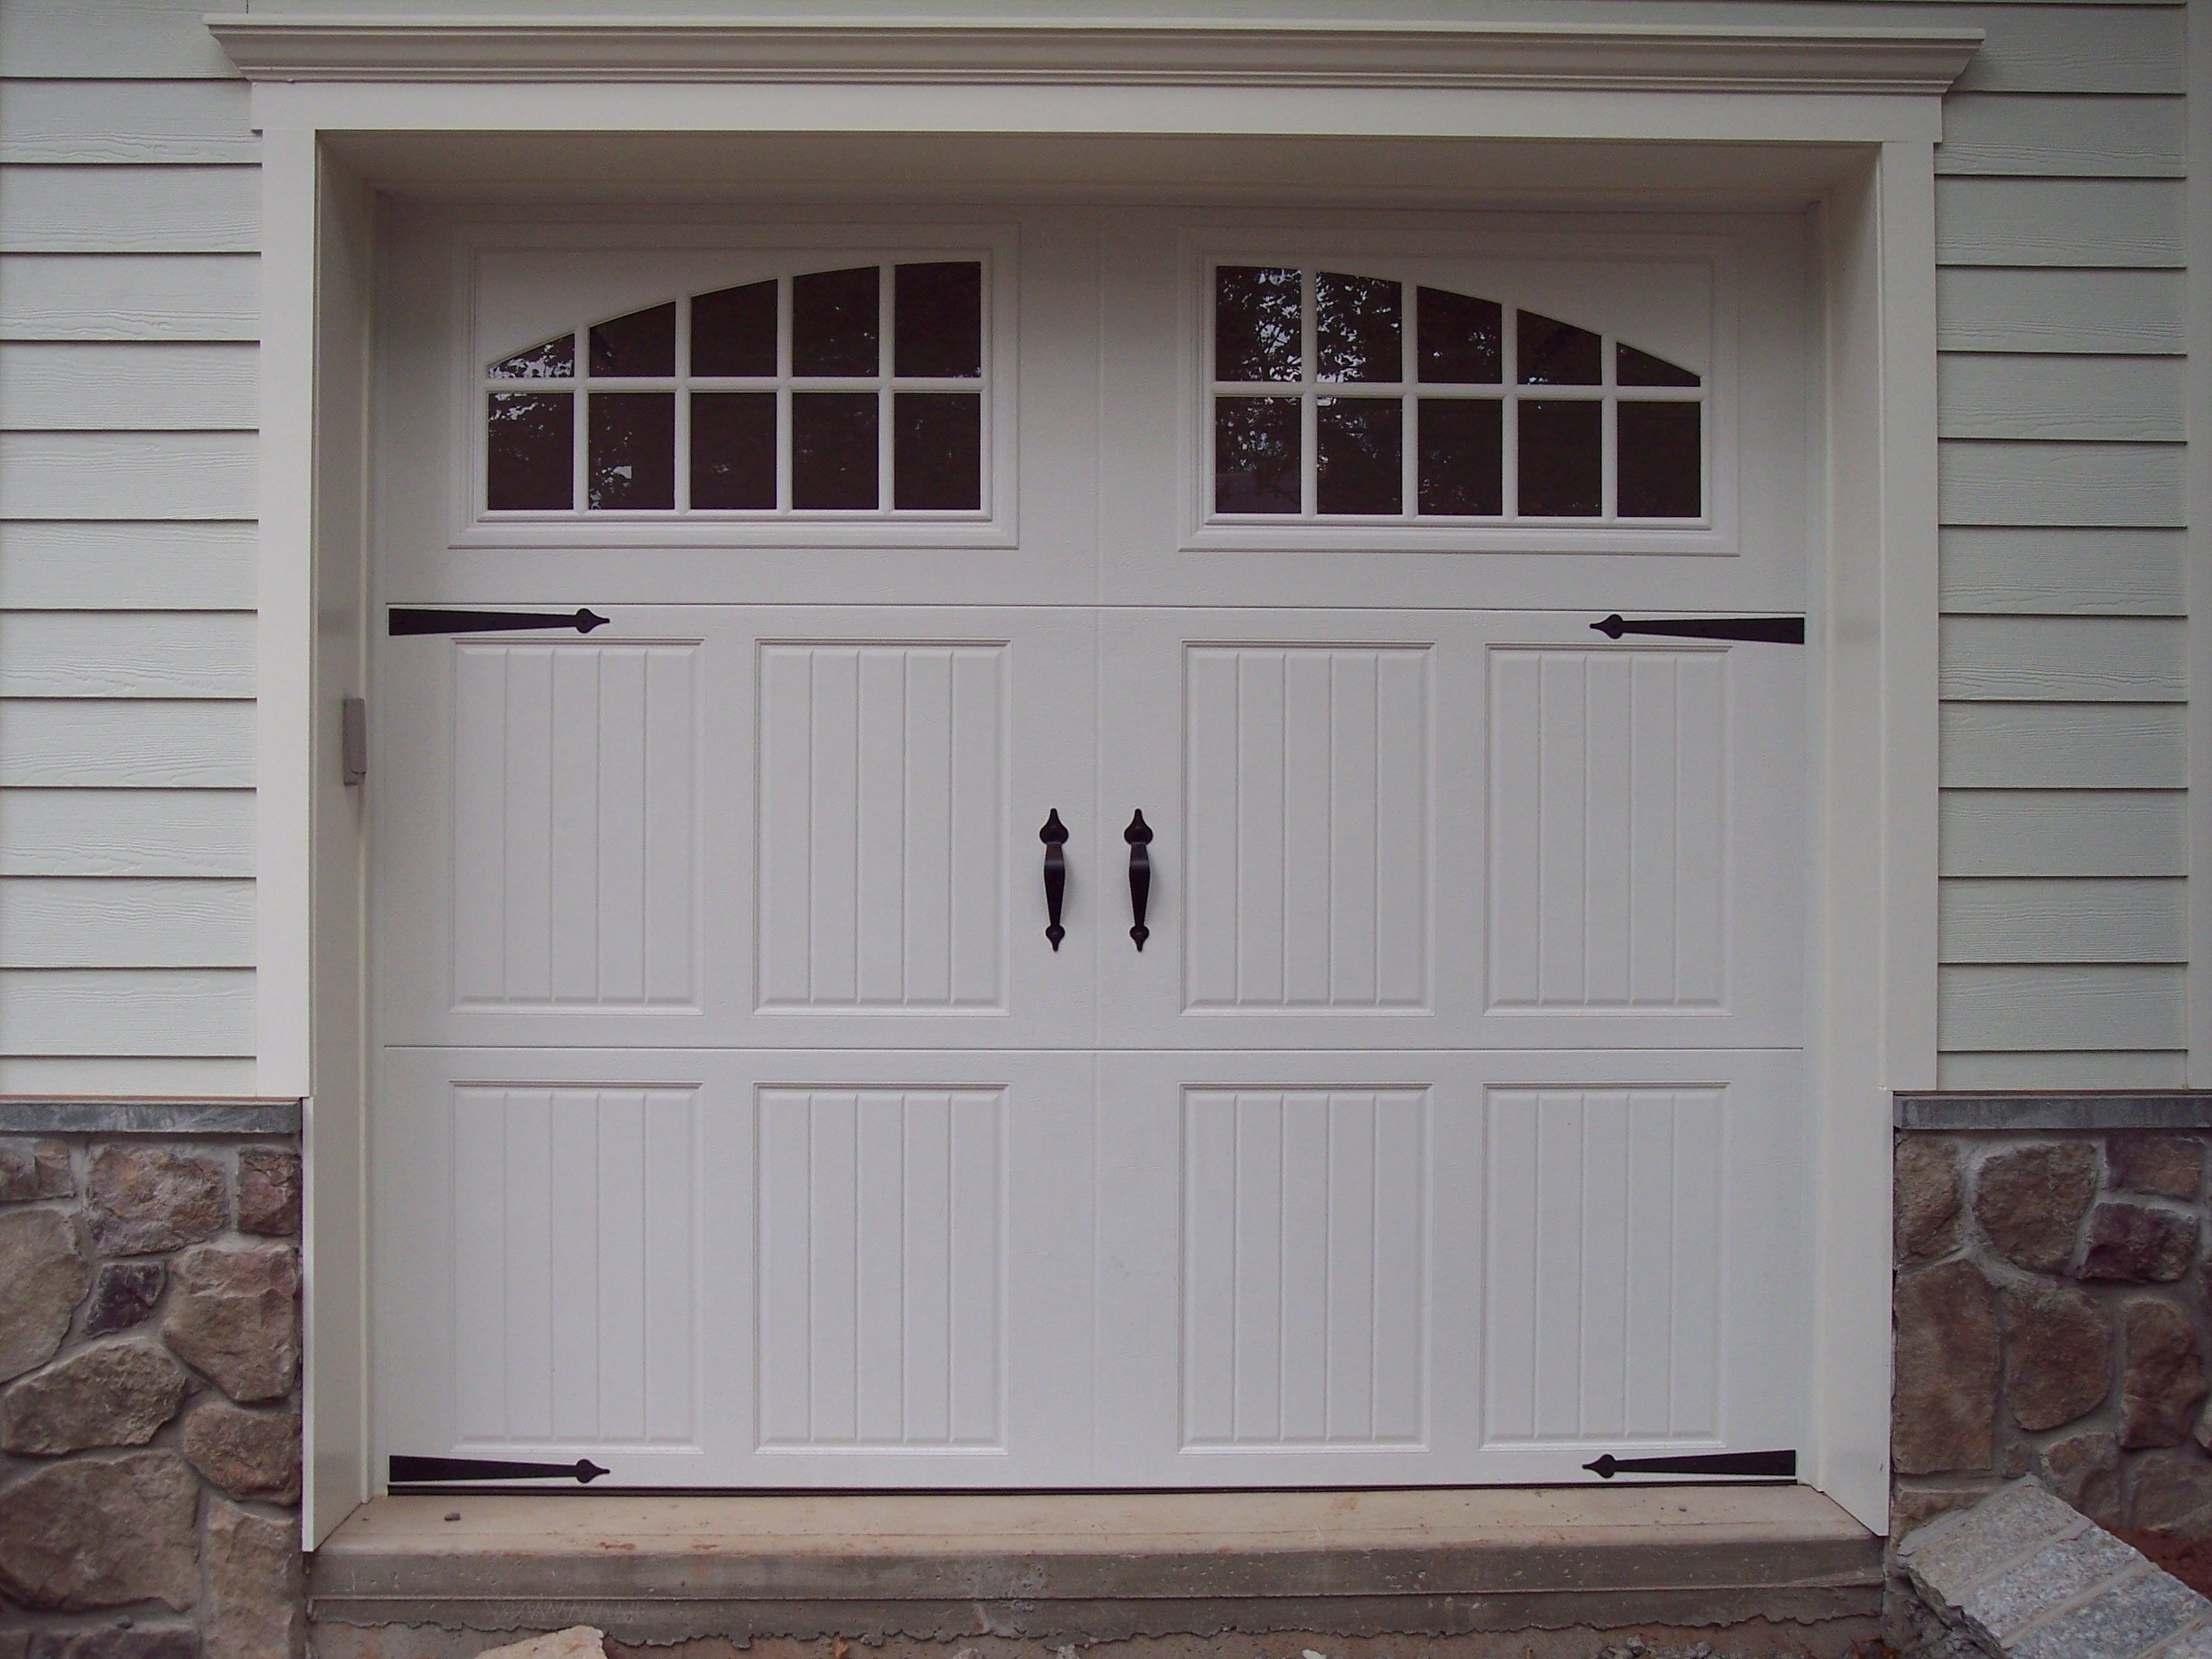 Carriage Garage Doors For The Home Pinterest Carriage Garage